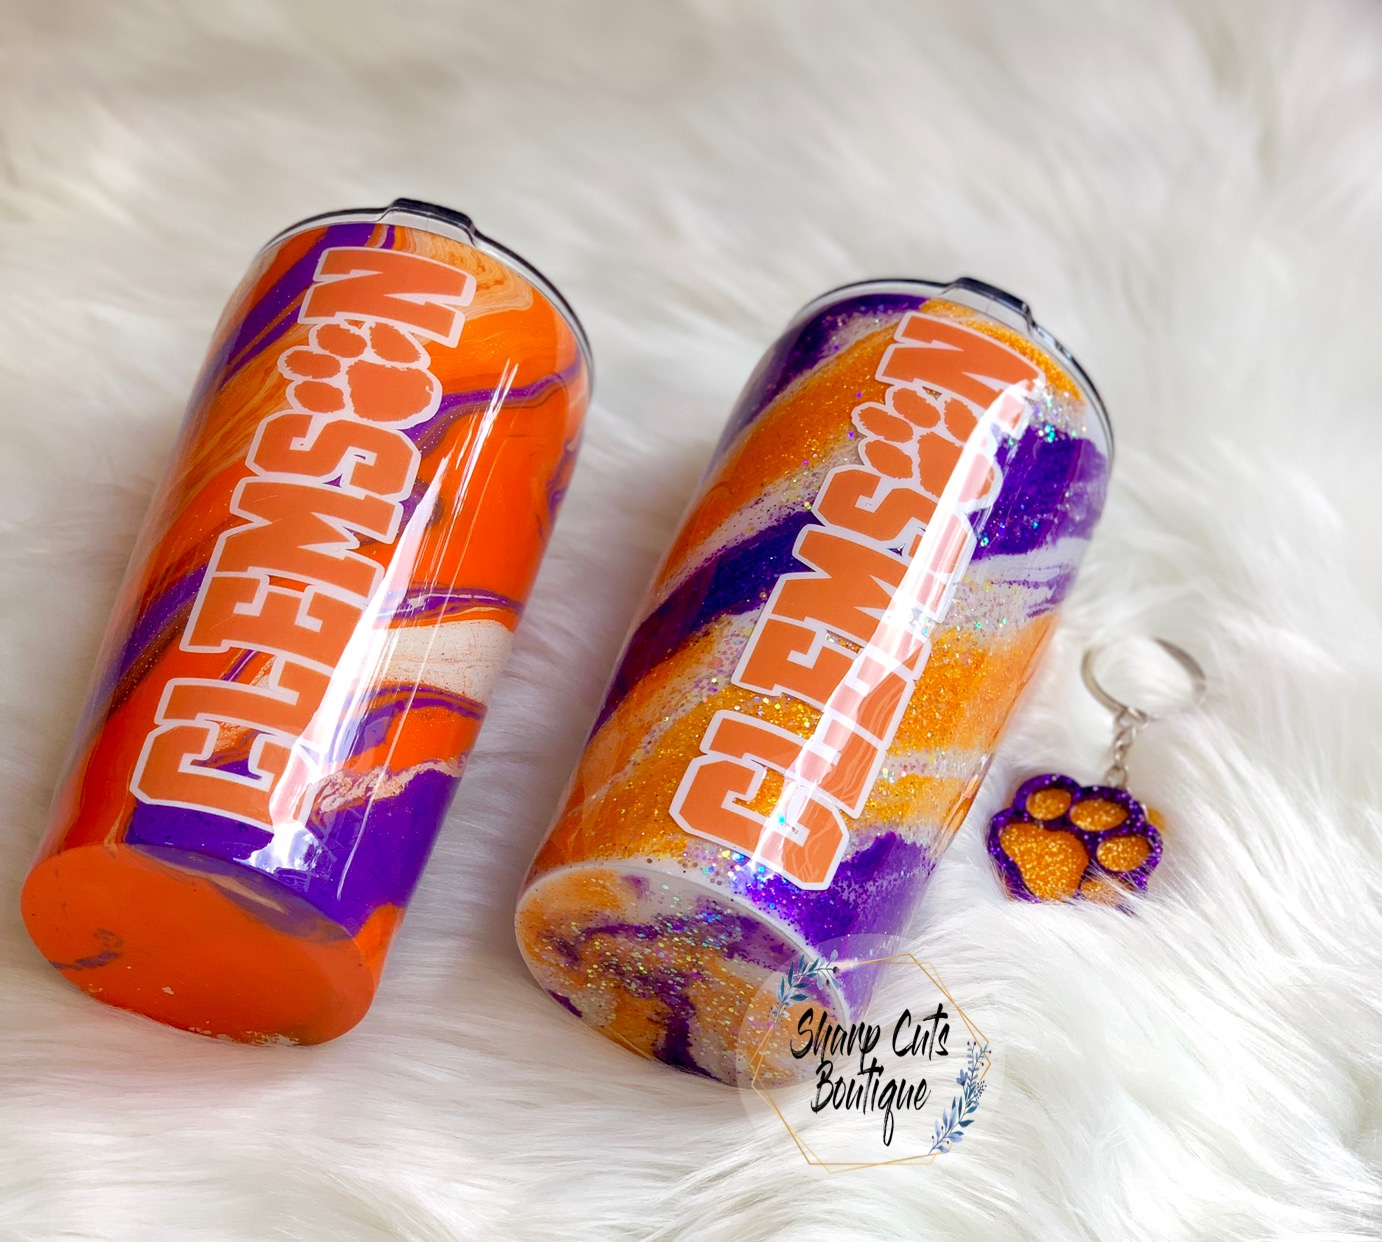 CUSTOM HYDRO DIPPED CLEMSON TUMBLER   This stainless steel, double wall, vacuum insulated tumbler is hydro dipped and includes a sliding lid with Clemson decal on one side and a tiger paw decal on the other side. Two separate winners - one regular and one glittered.  DONOR: Sharp Cuts Boutique VALUE: Regular $30, Glitter $55